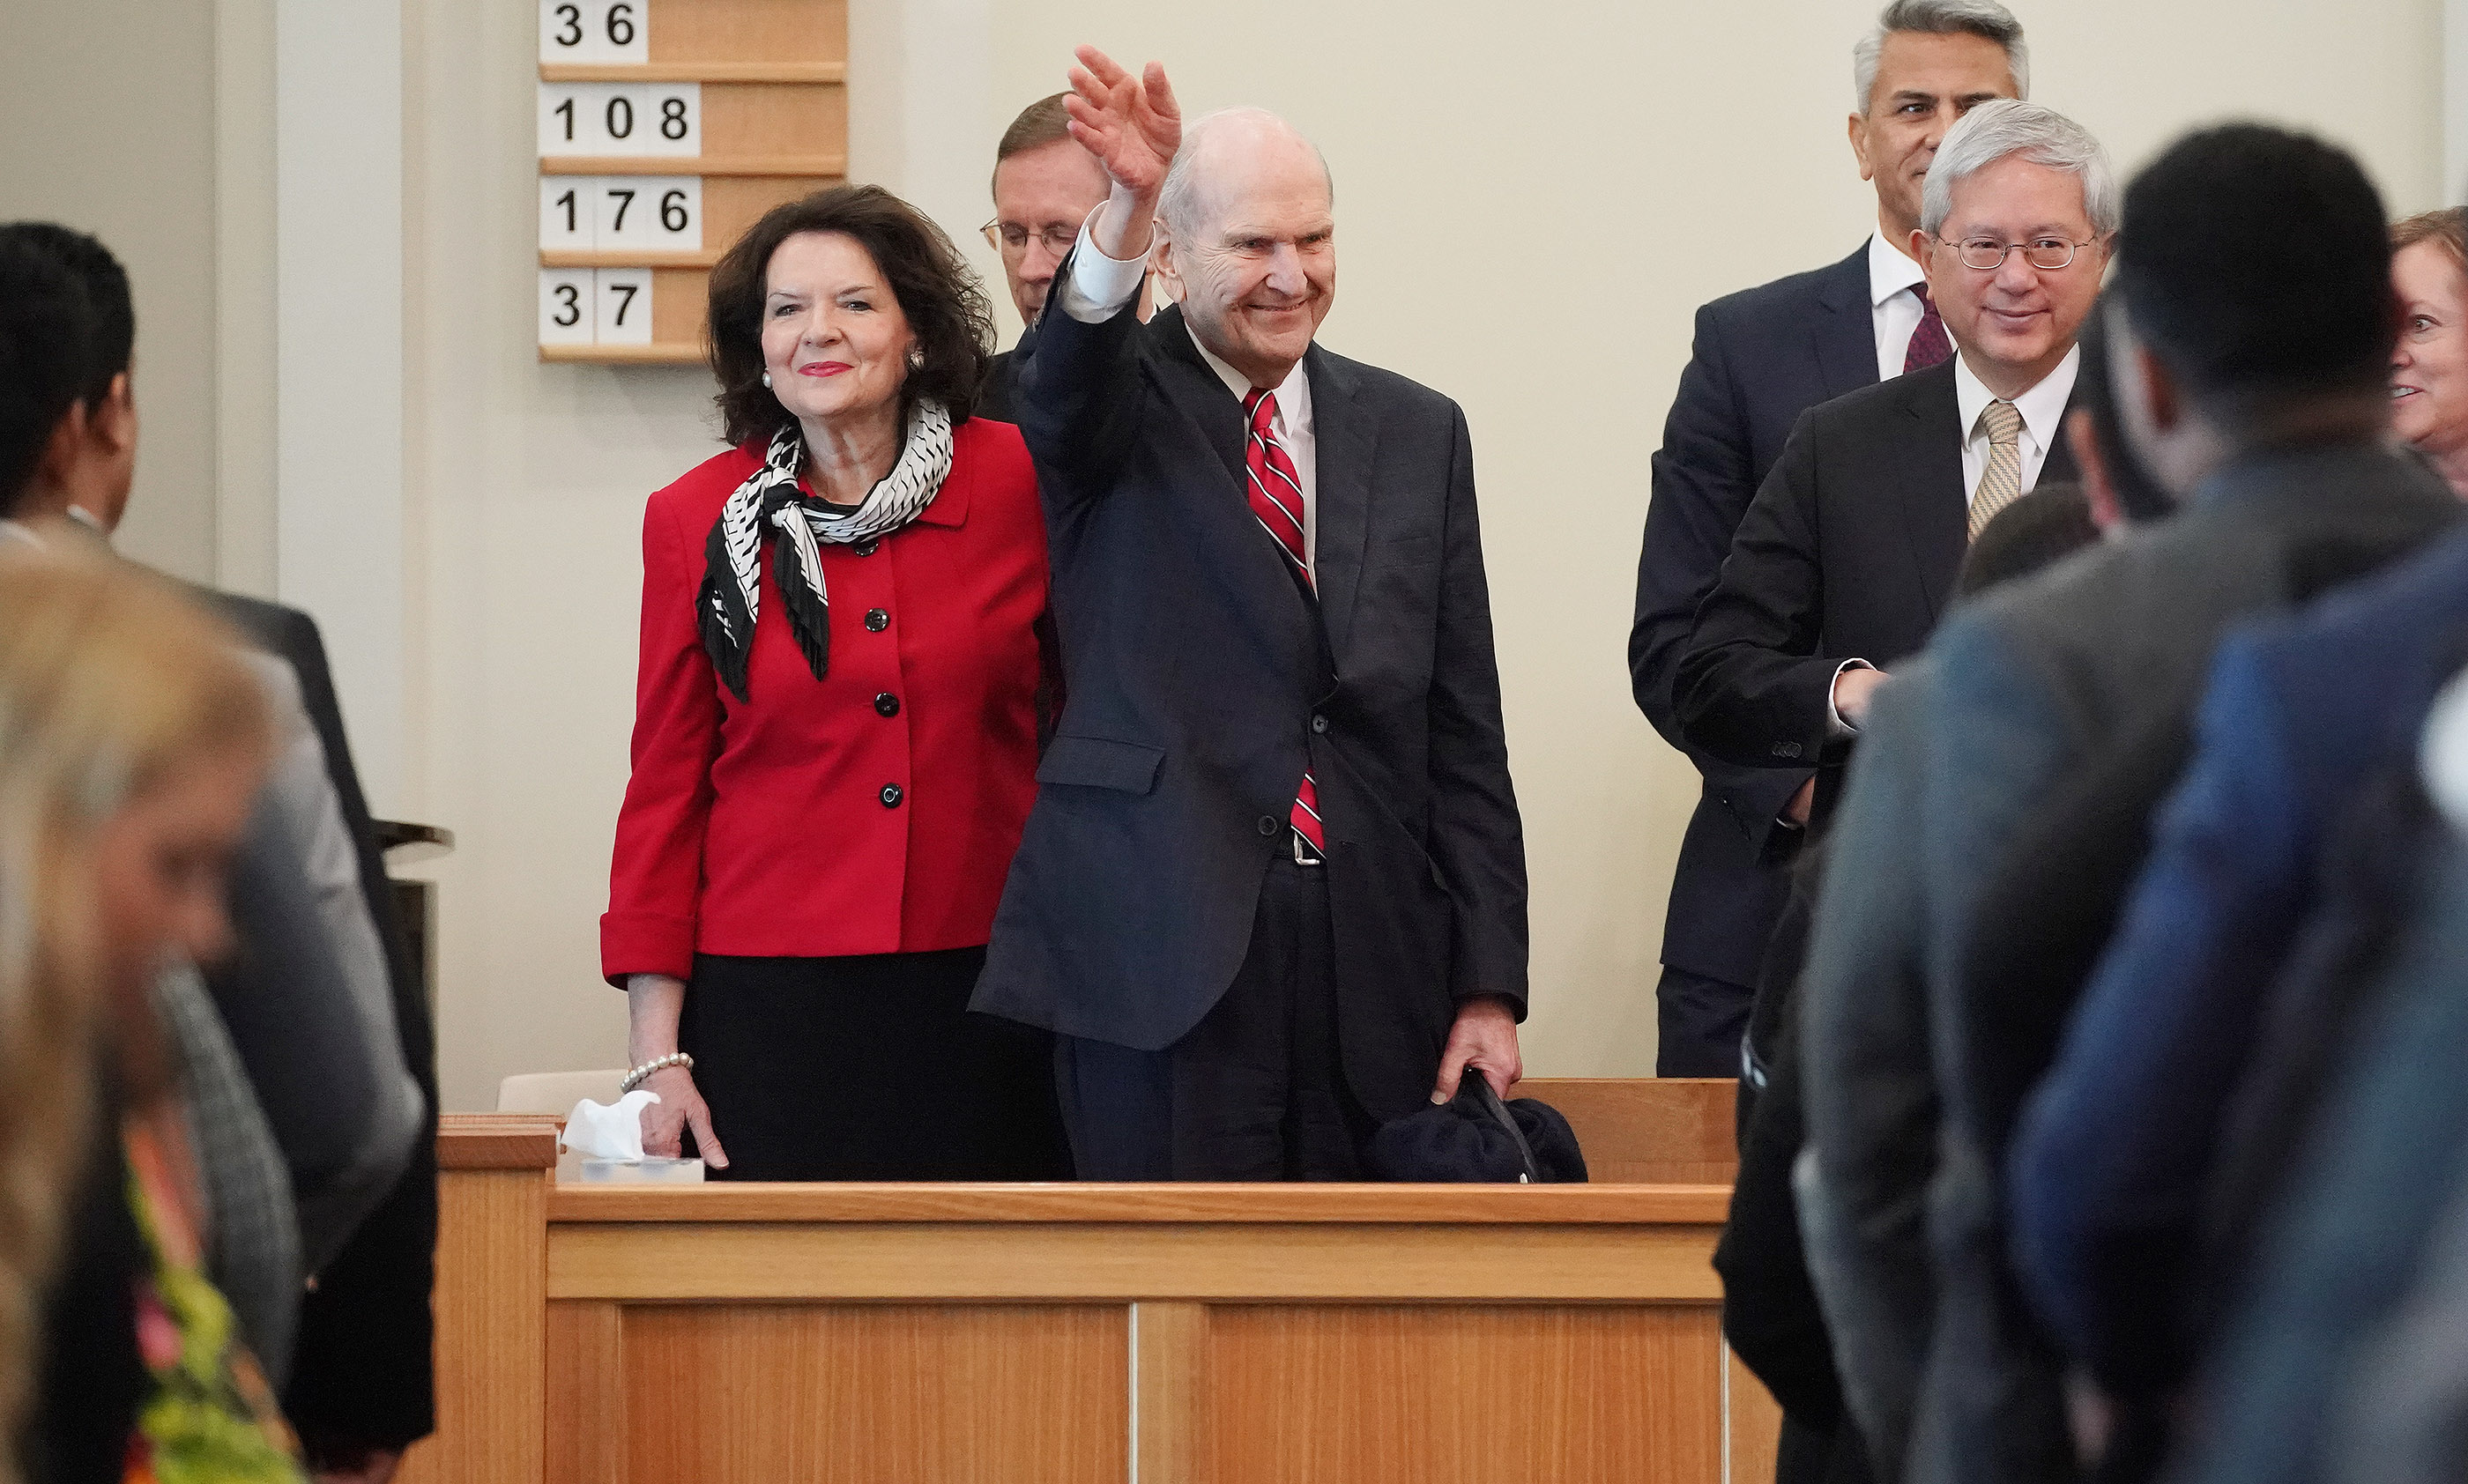 President Russell M. Nelson of The Church of Jesus Christ of Latter-day Saints and his wife, Sister Wendy Nelson, wave after meeting with missionaries in Auckland, New Zealand, on Tuesday, May 21, 2019.